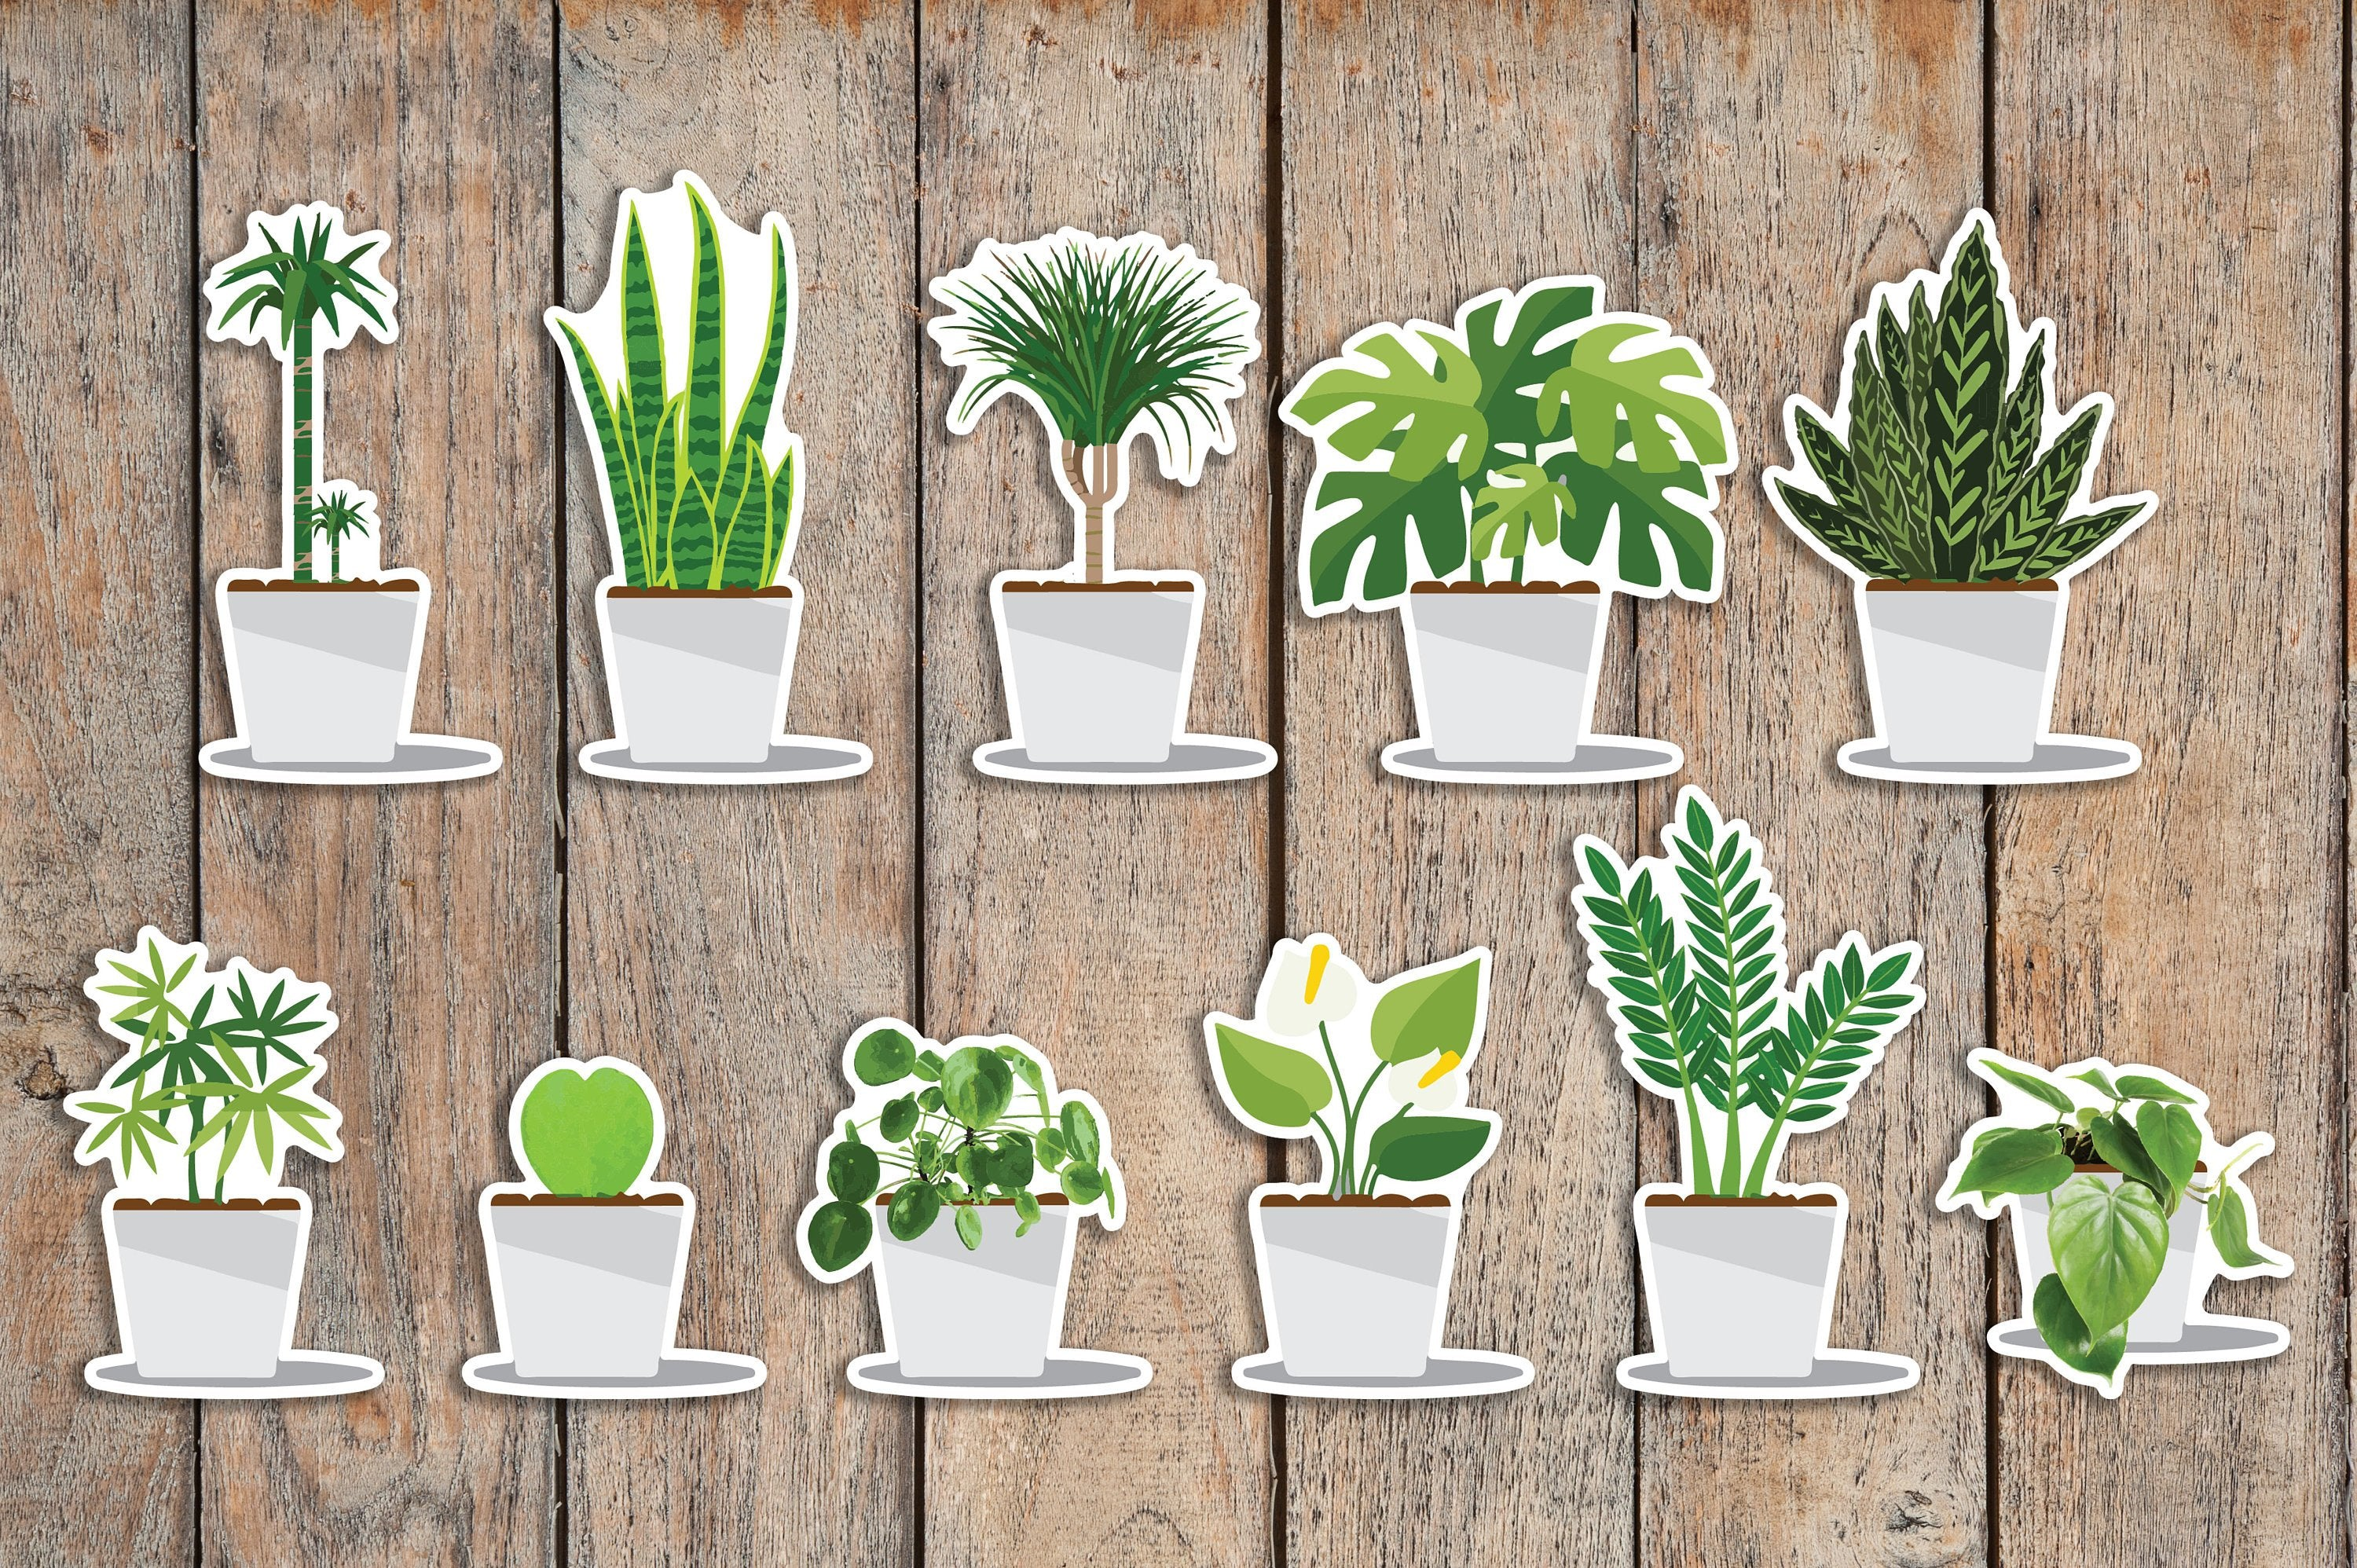 55 Water Plants, Plant Care Icon Planner Stickers FL1